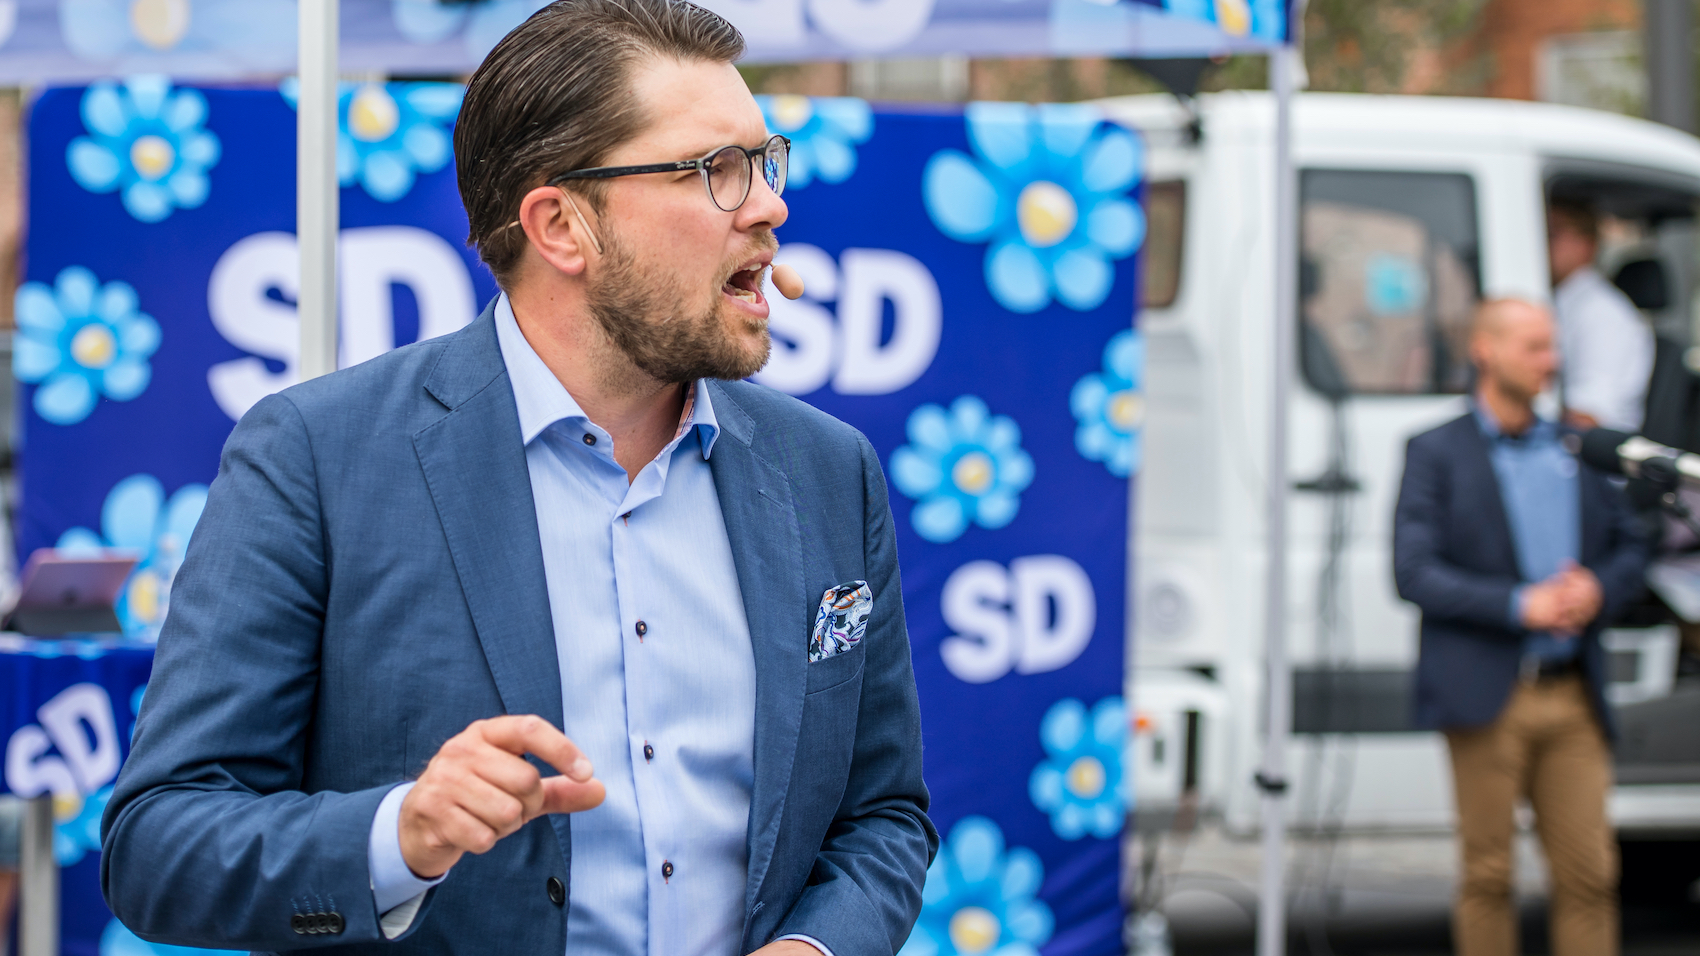 Sweden Democrats' Square Meeting in Umeå. Jimmie Åkesson speaks to the people on the city square in Umeå, Sweden on August 14, 2018.